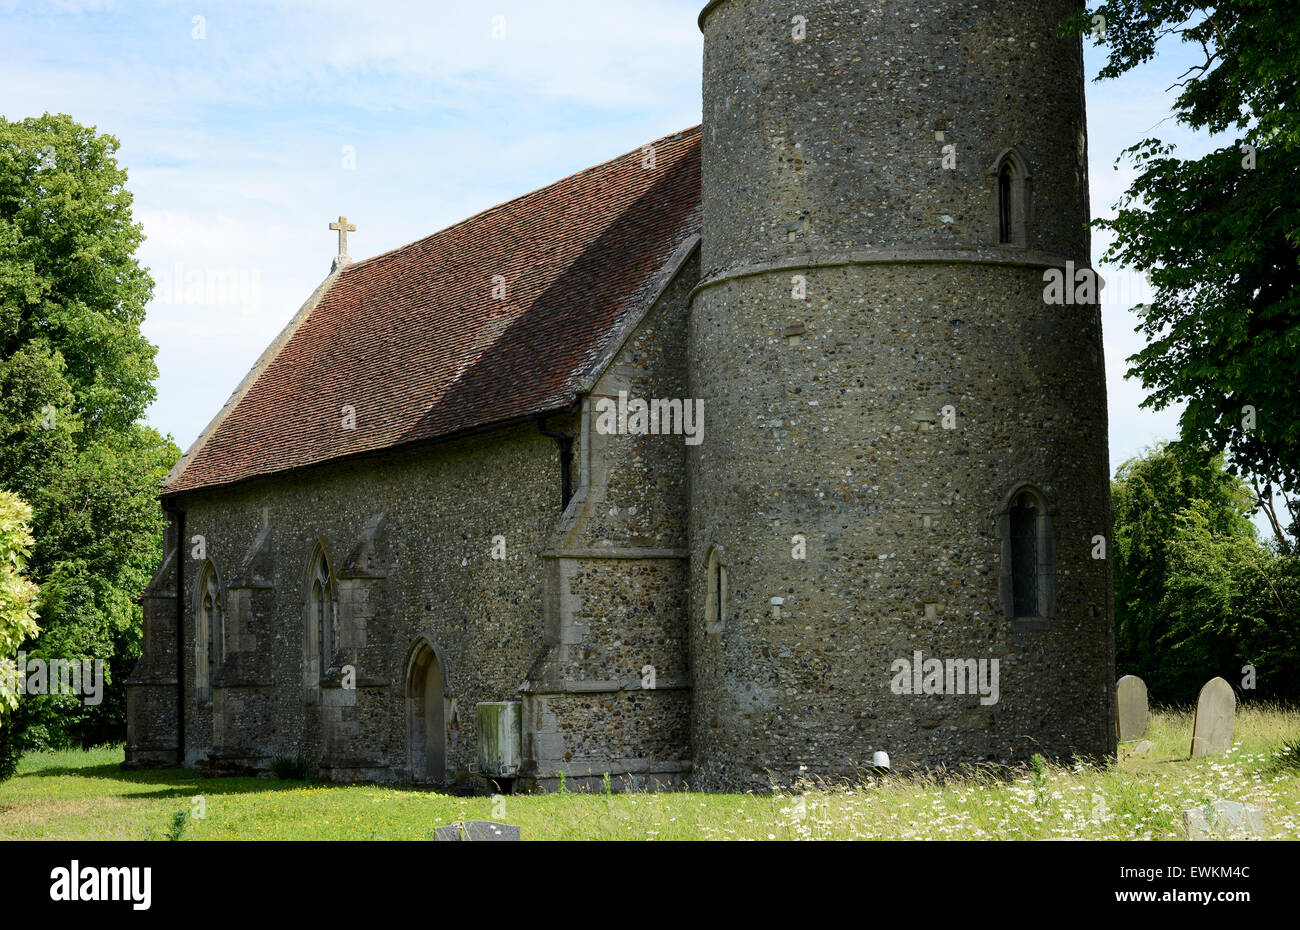 Church of St Peter & St Paul, Bardfield Saling - Stock Image